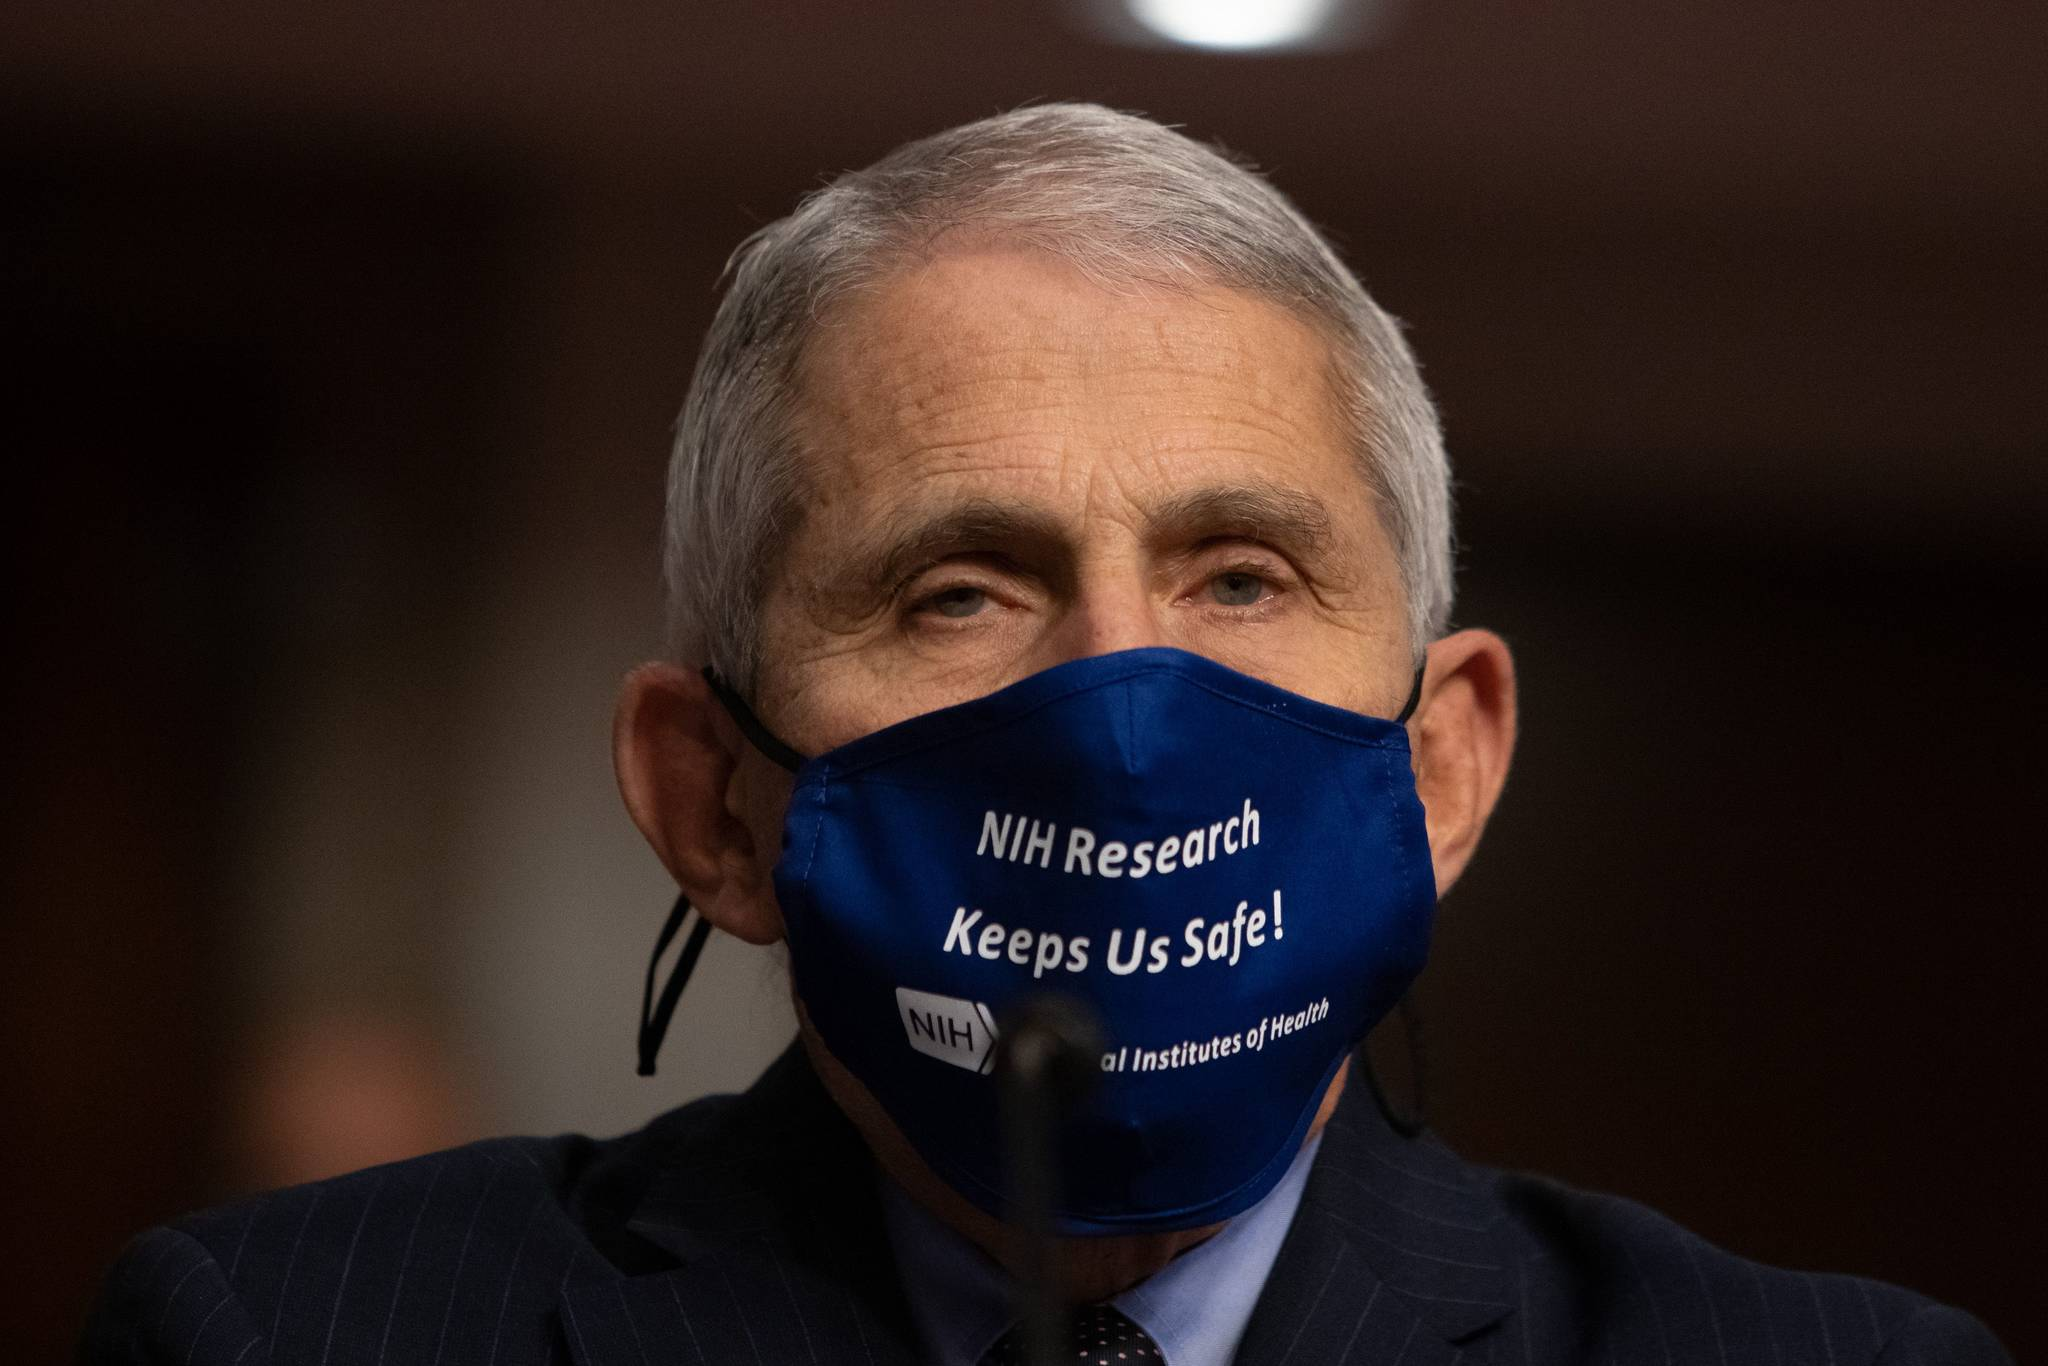 Dr. Anthony Fauci, director of National Institute of Allergy and Infectious Diseases at NIH. (Pool/Getty Images/TNS)